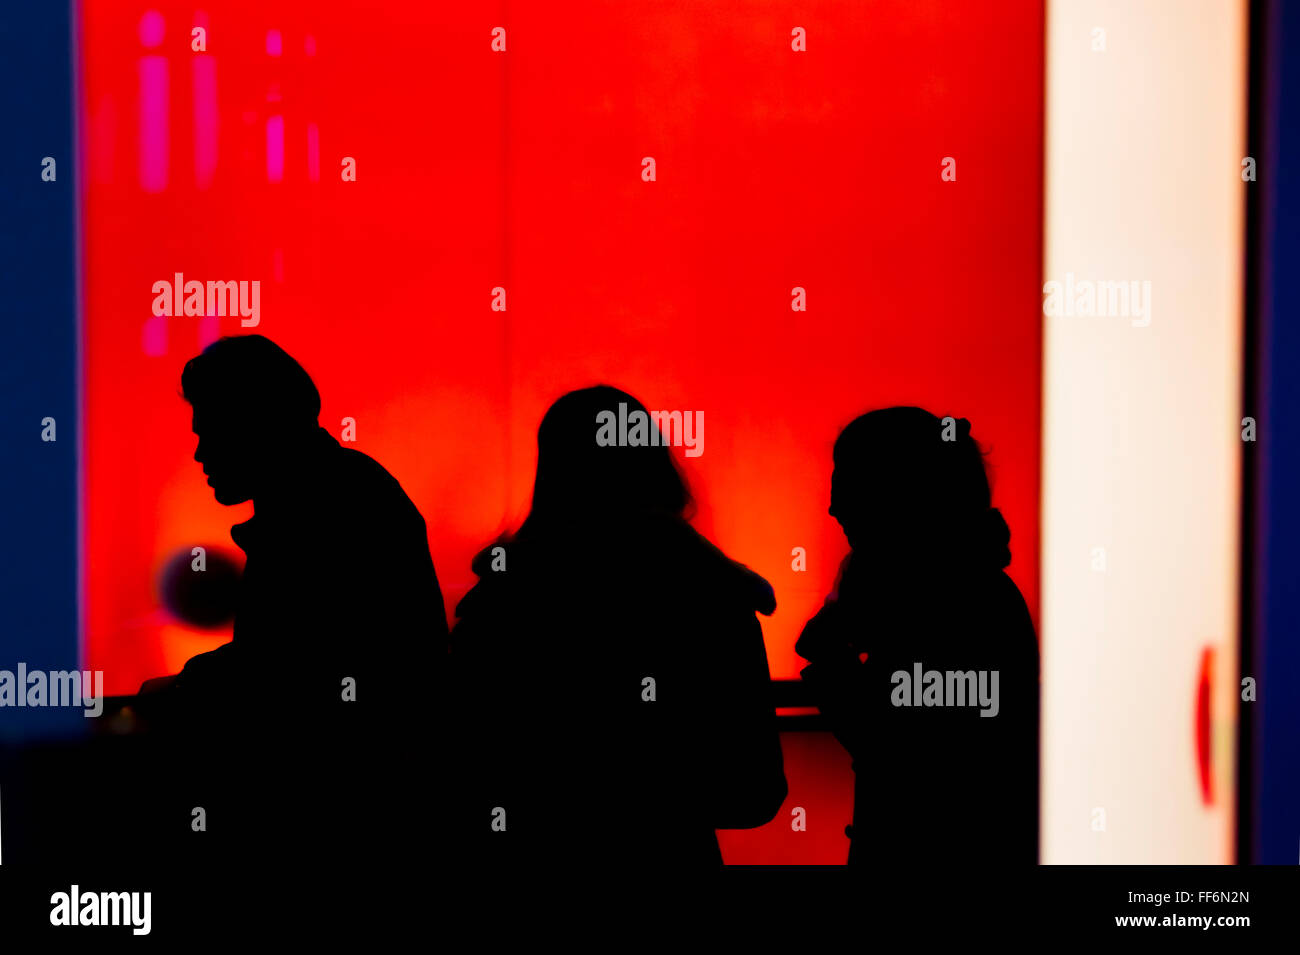 silhouettes of three persons against red background - Stock Image